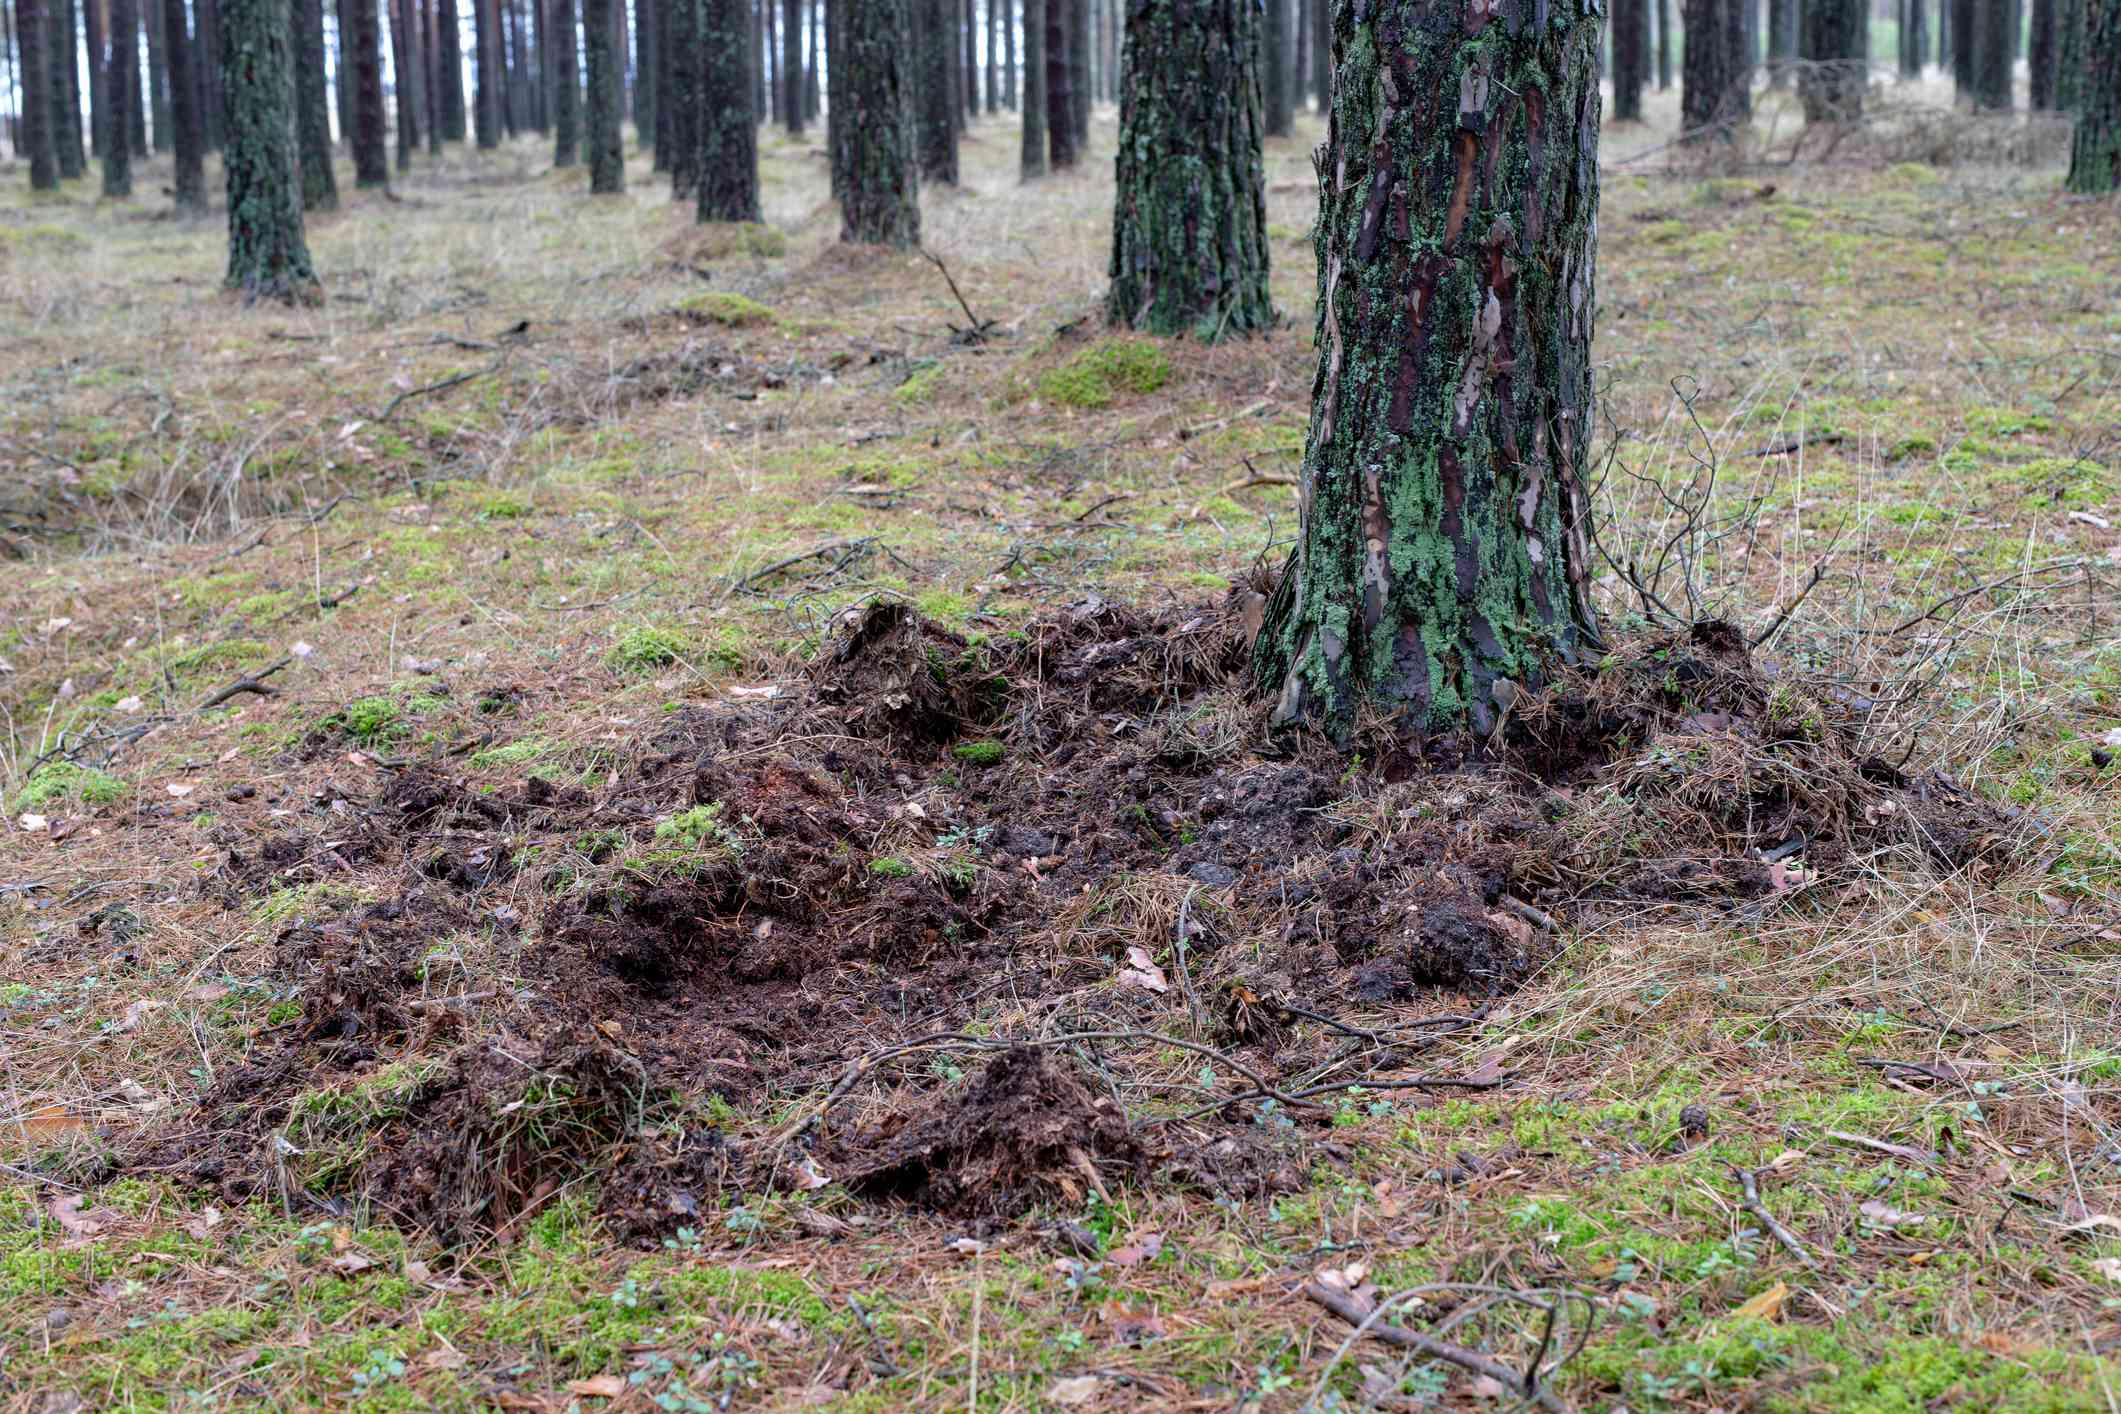 Traces of wild boar on a forest road